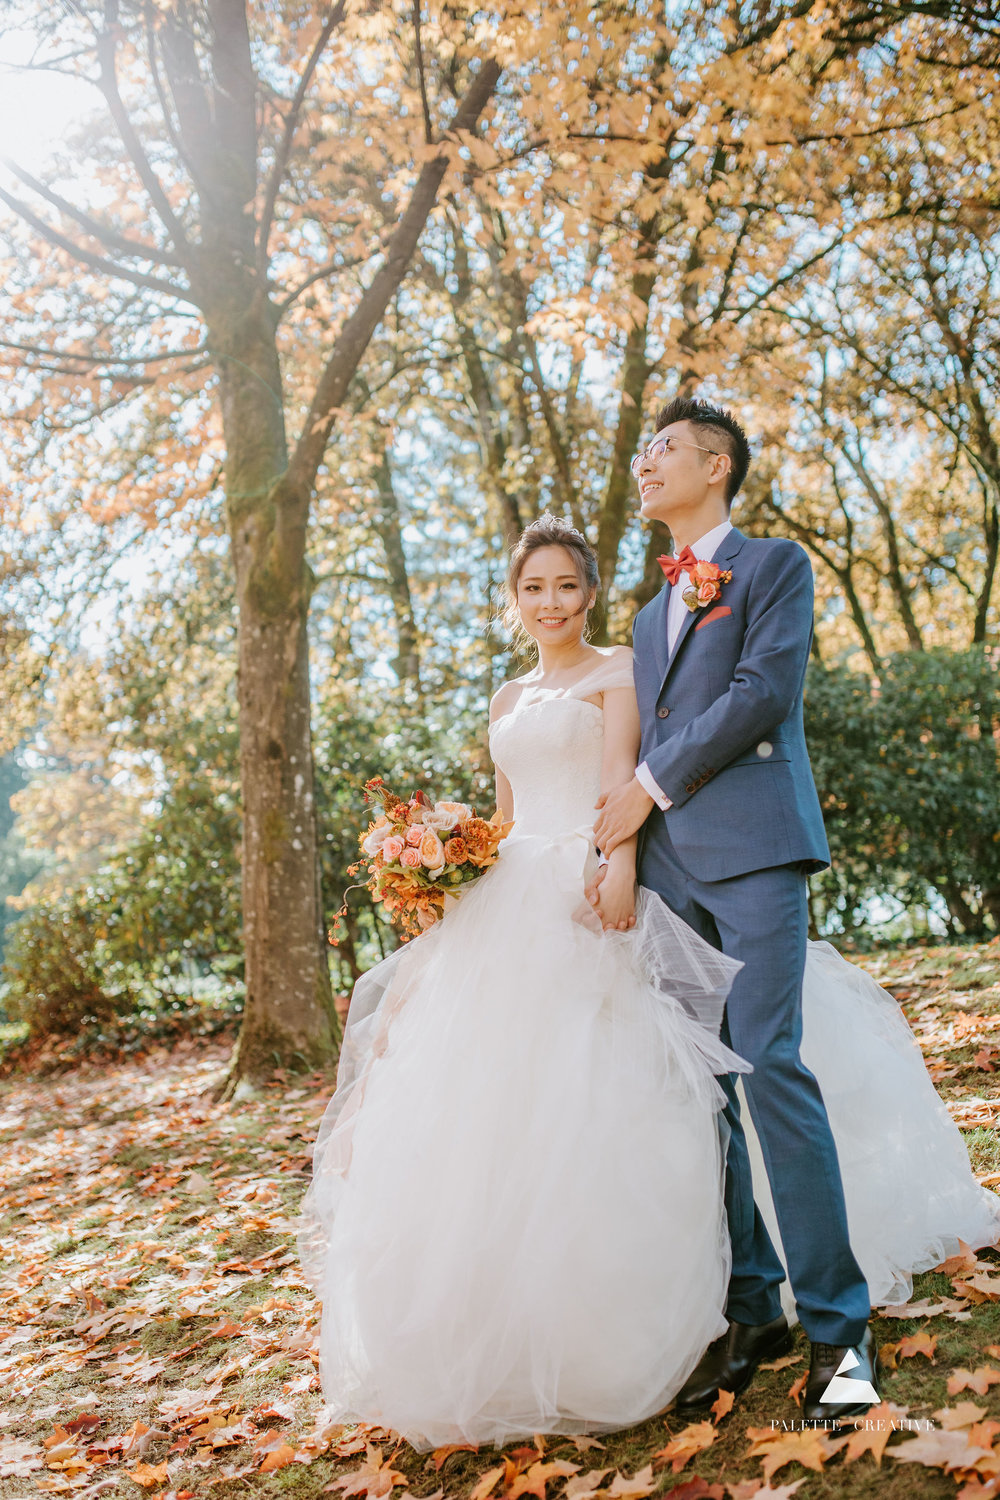 Ying&Adam-WeddingDay-HL-HD-90.JPG